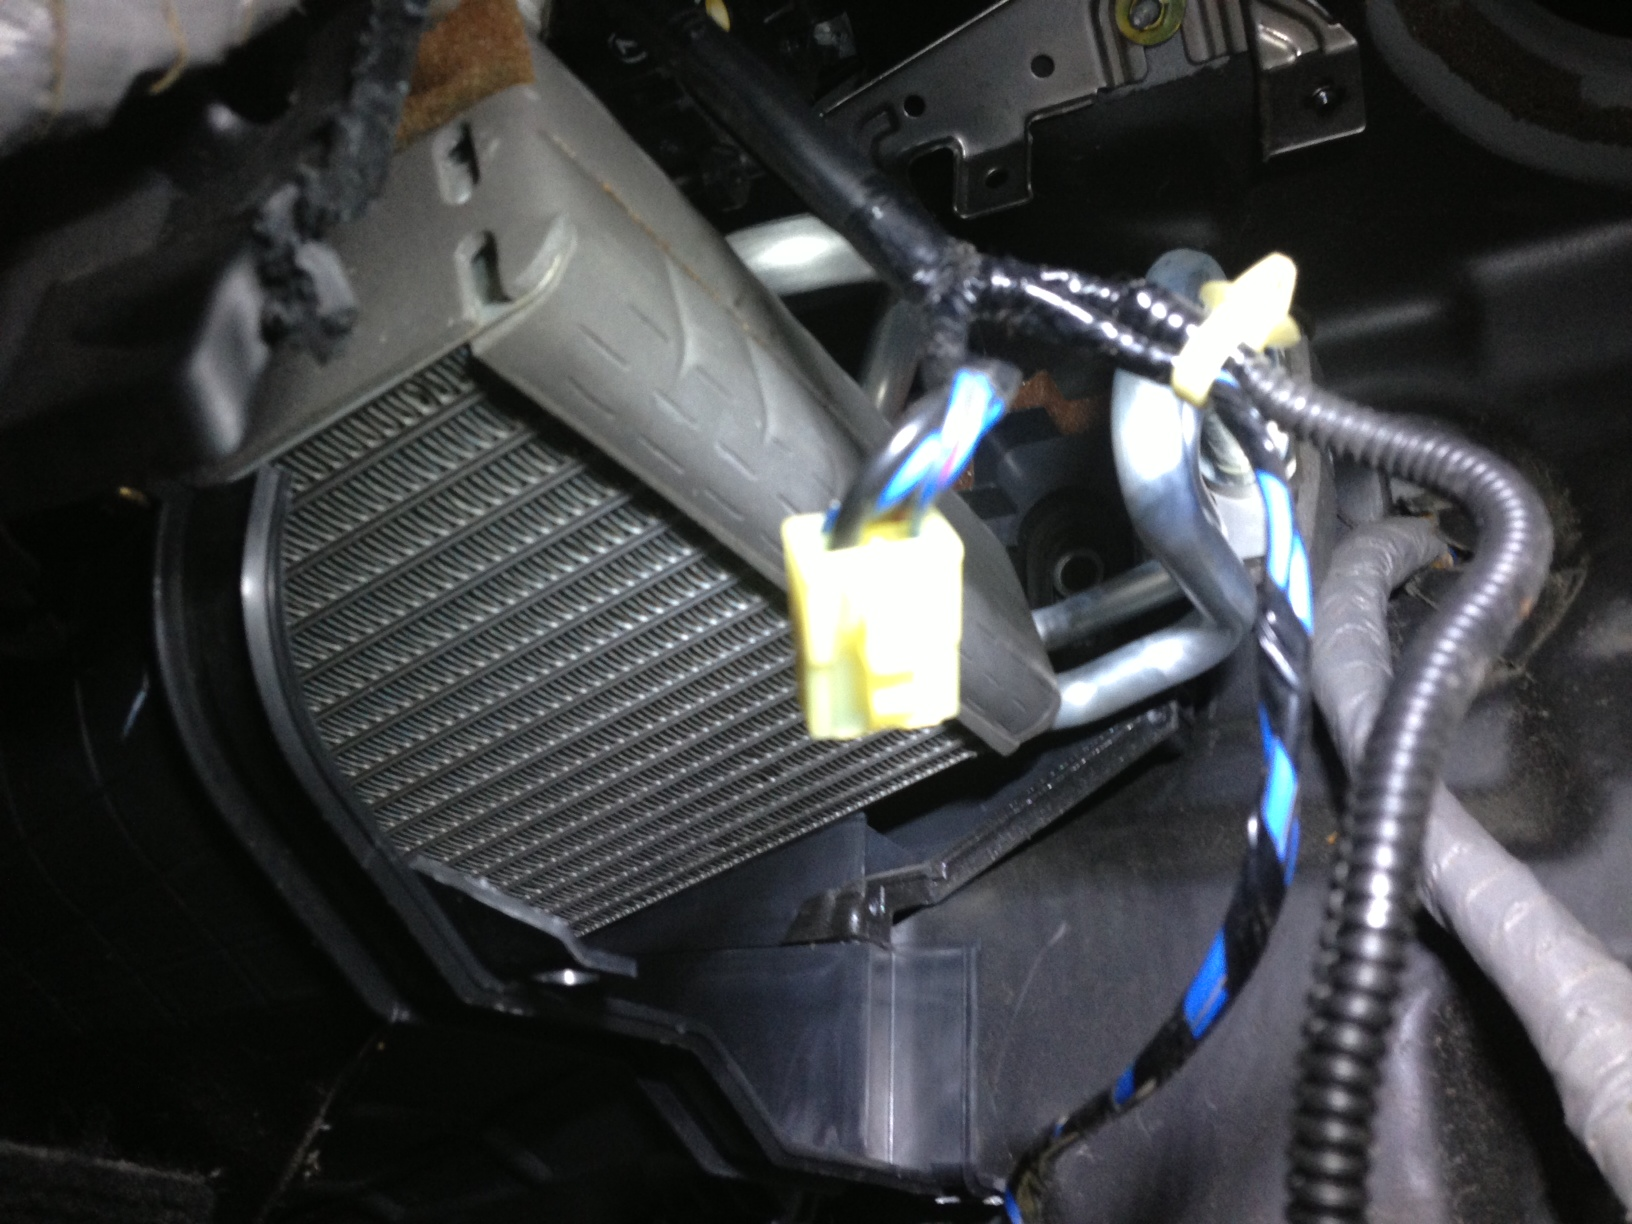 2002 Honda Crv Evaporator Expansion Valve Installation Classic Subaru Coil Wiring Diagram The And Come Out Together Cannot Be Serviced Without Removing